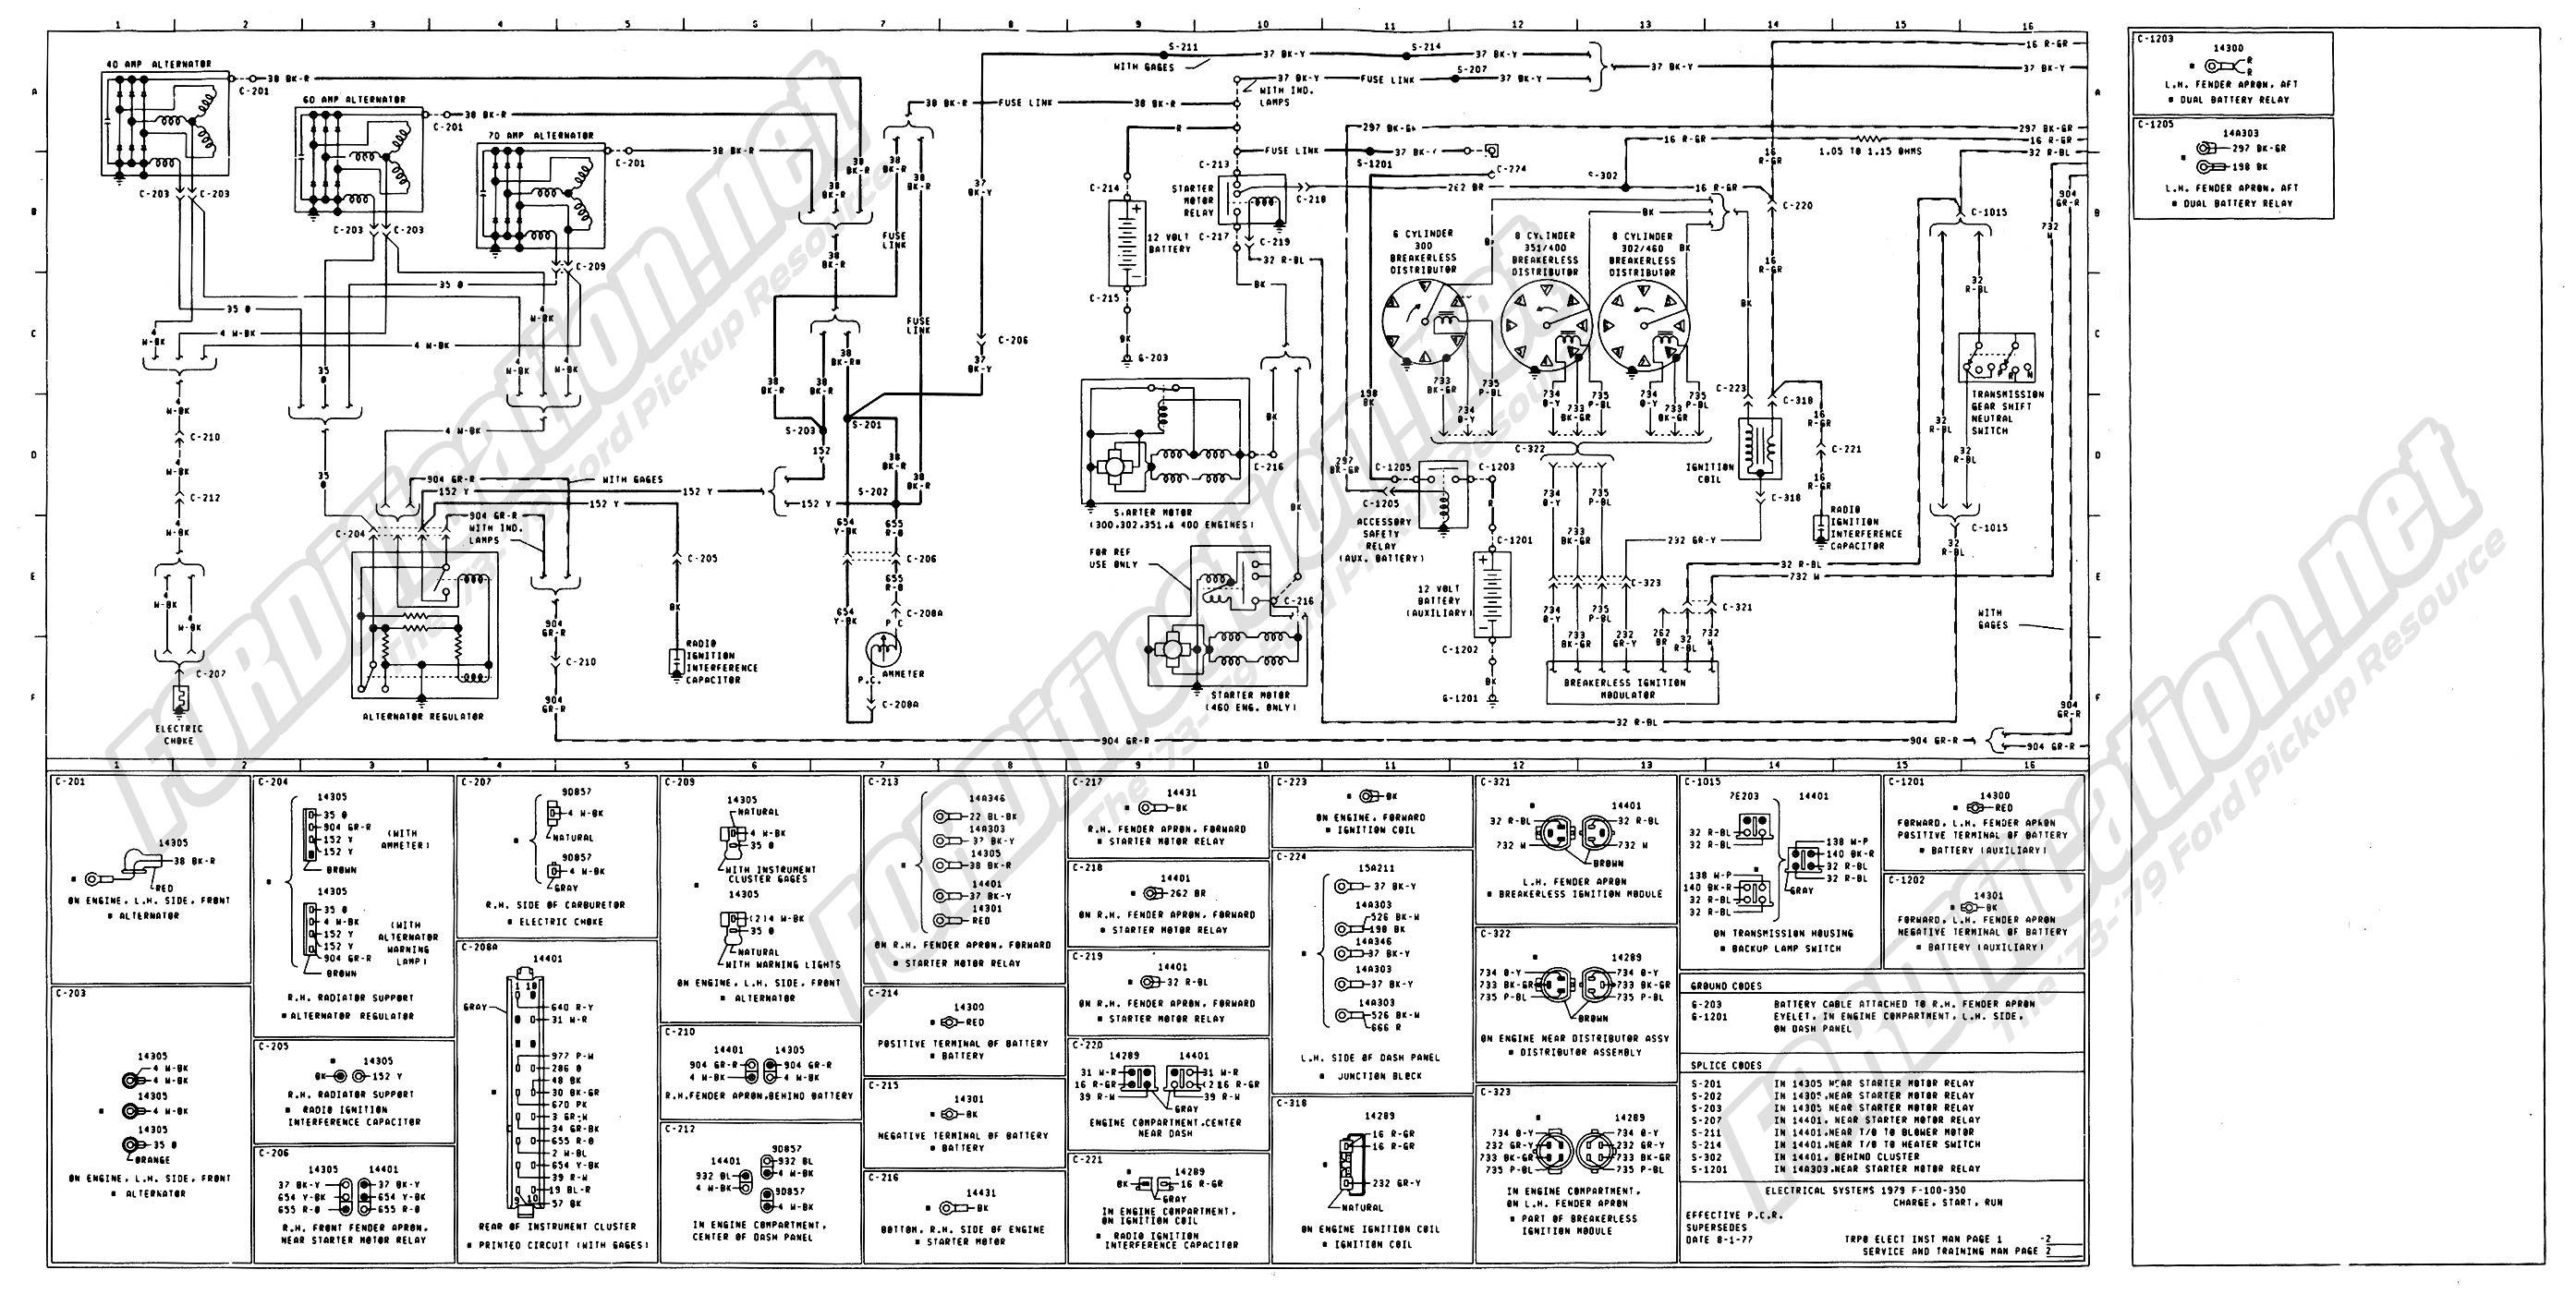 84 Mustang Alternator Wiring Diagram | Wiring Liry on 1985 mustang alternator wiring diagram, 1968 mustang alternator wiring diagram, 1969 mustang alternator wiring diagram, 1980 mustang alternator wiring diagram, 1966 mustang alternator wiring diagram, 1992 mustang alternator wiring diagram, 1970 mustang alternator wiring diagram, 1967 mustang alternator wiring diagram, 1971 mustang alternator wiring diagram, 1986 mustang alternator wiring diagram, 1972 mustang alternator wiring diagram, 1973 mustang alternator wiring diagram, 1989 mustang alternator wiring diagram, 1983 mustang alternator wiring diagram, 1990 mustang alternator wiring diagram,